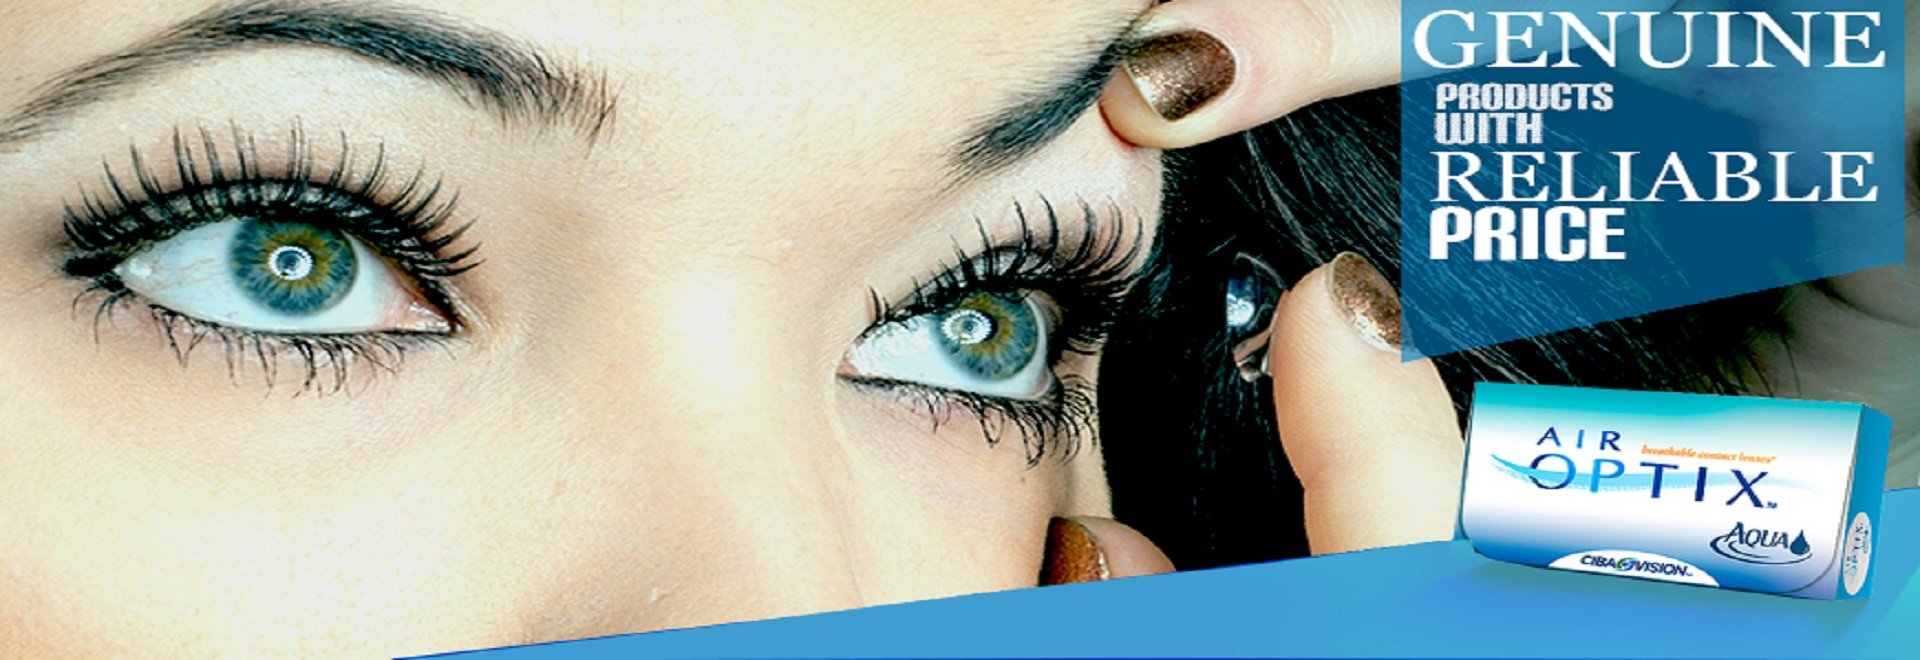 Rs. 200 coupon code for all on a purchase of two pairs of coloured lenses.